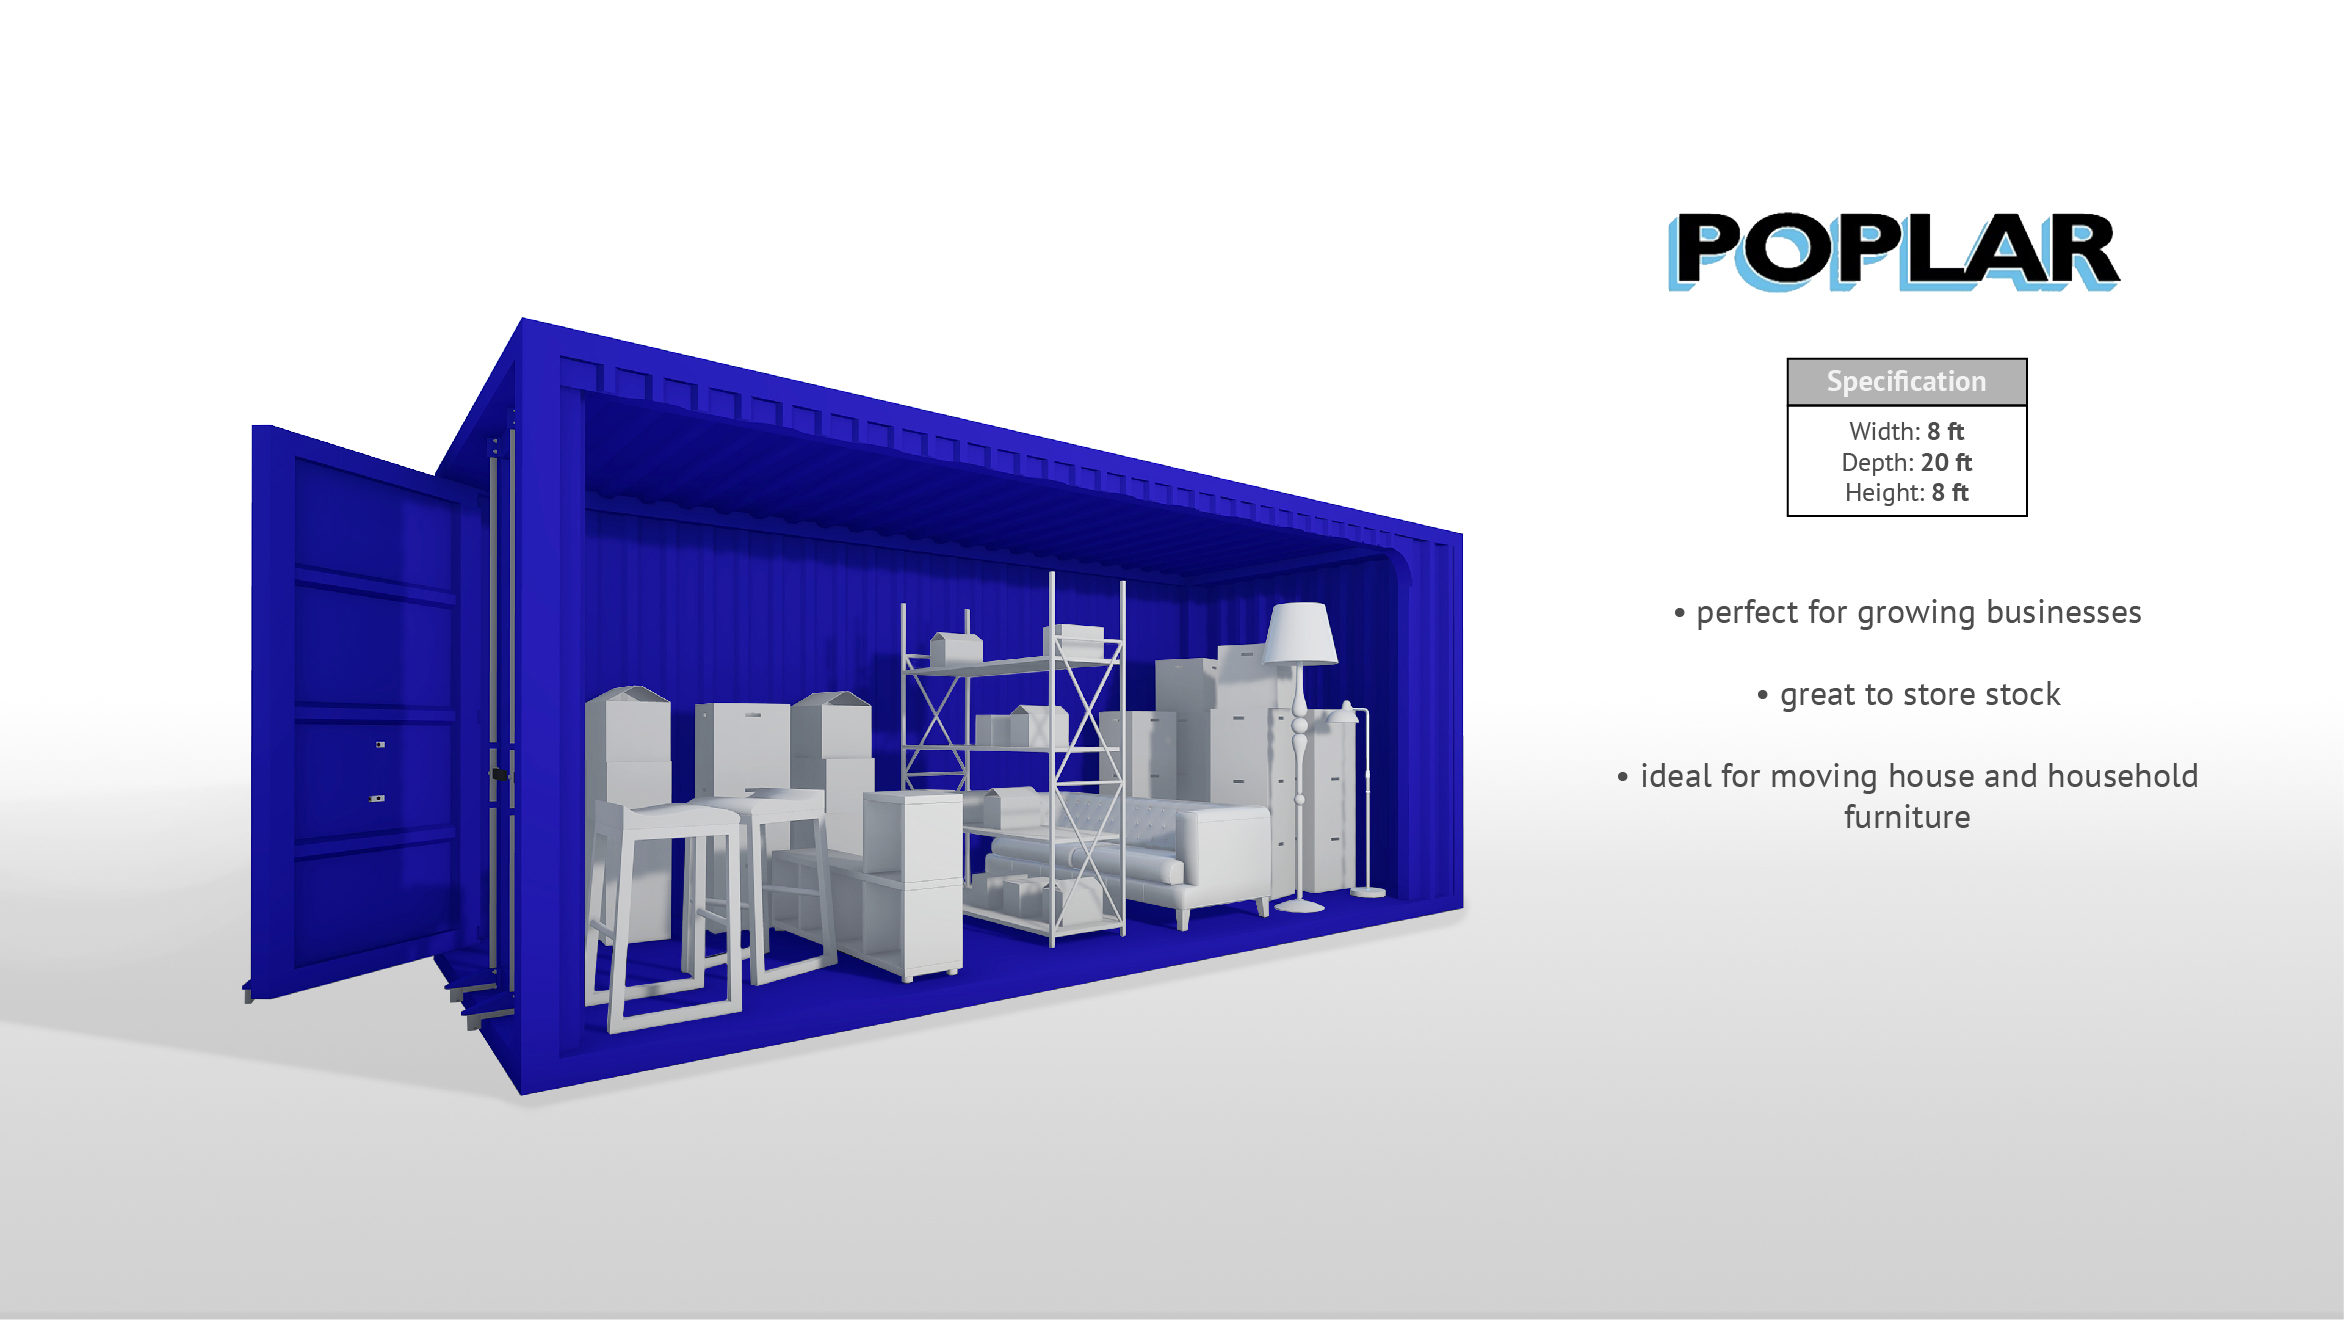 20ft x 8ft Storage Container